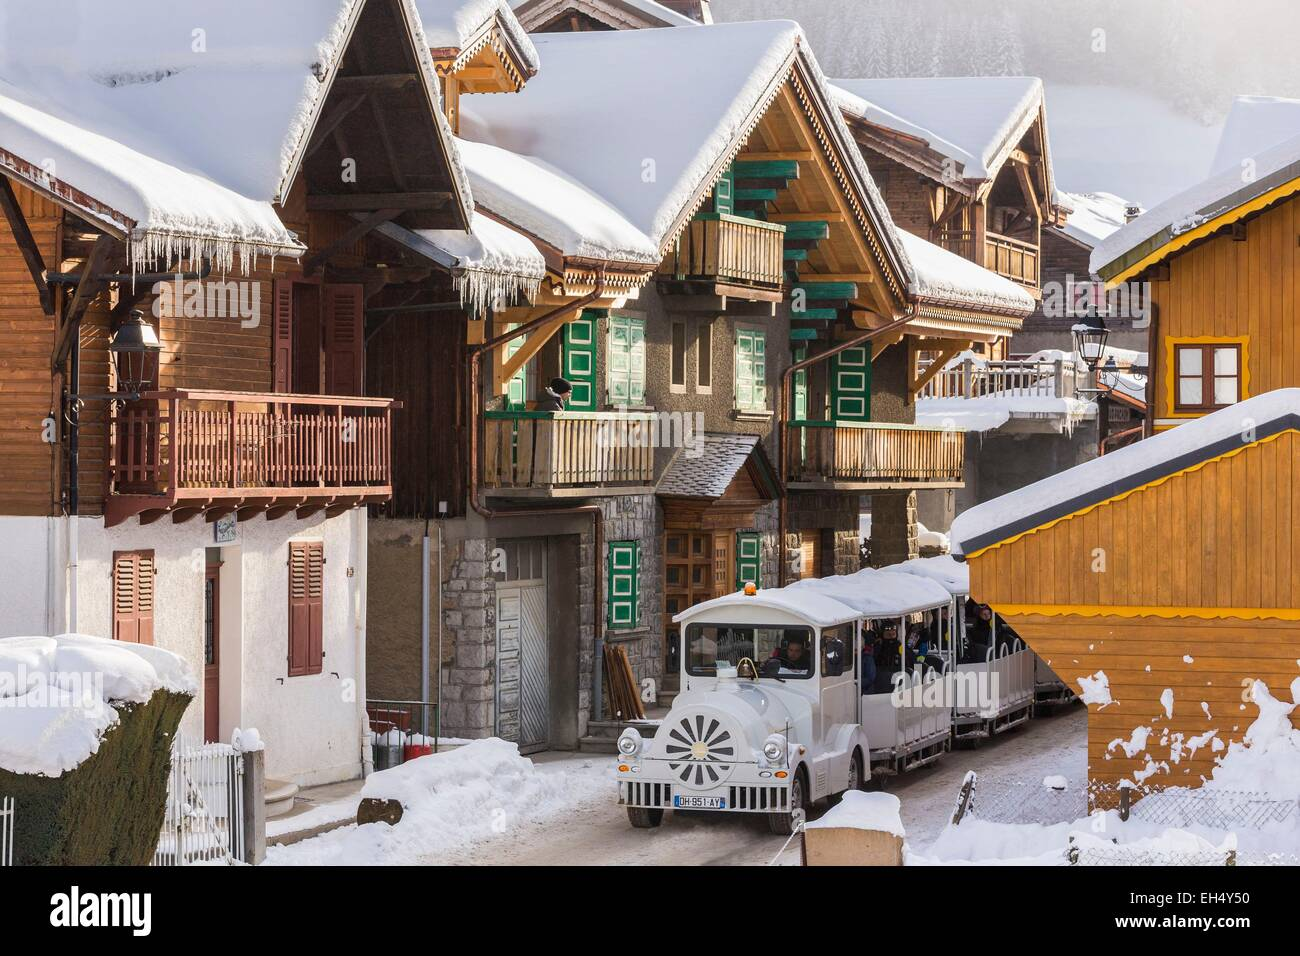 France, Haute-Savoie, Morzine, the valley of Aulps, ski slopes of the Portes du Soleil, the small train for the - Stock Image